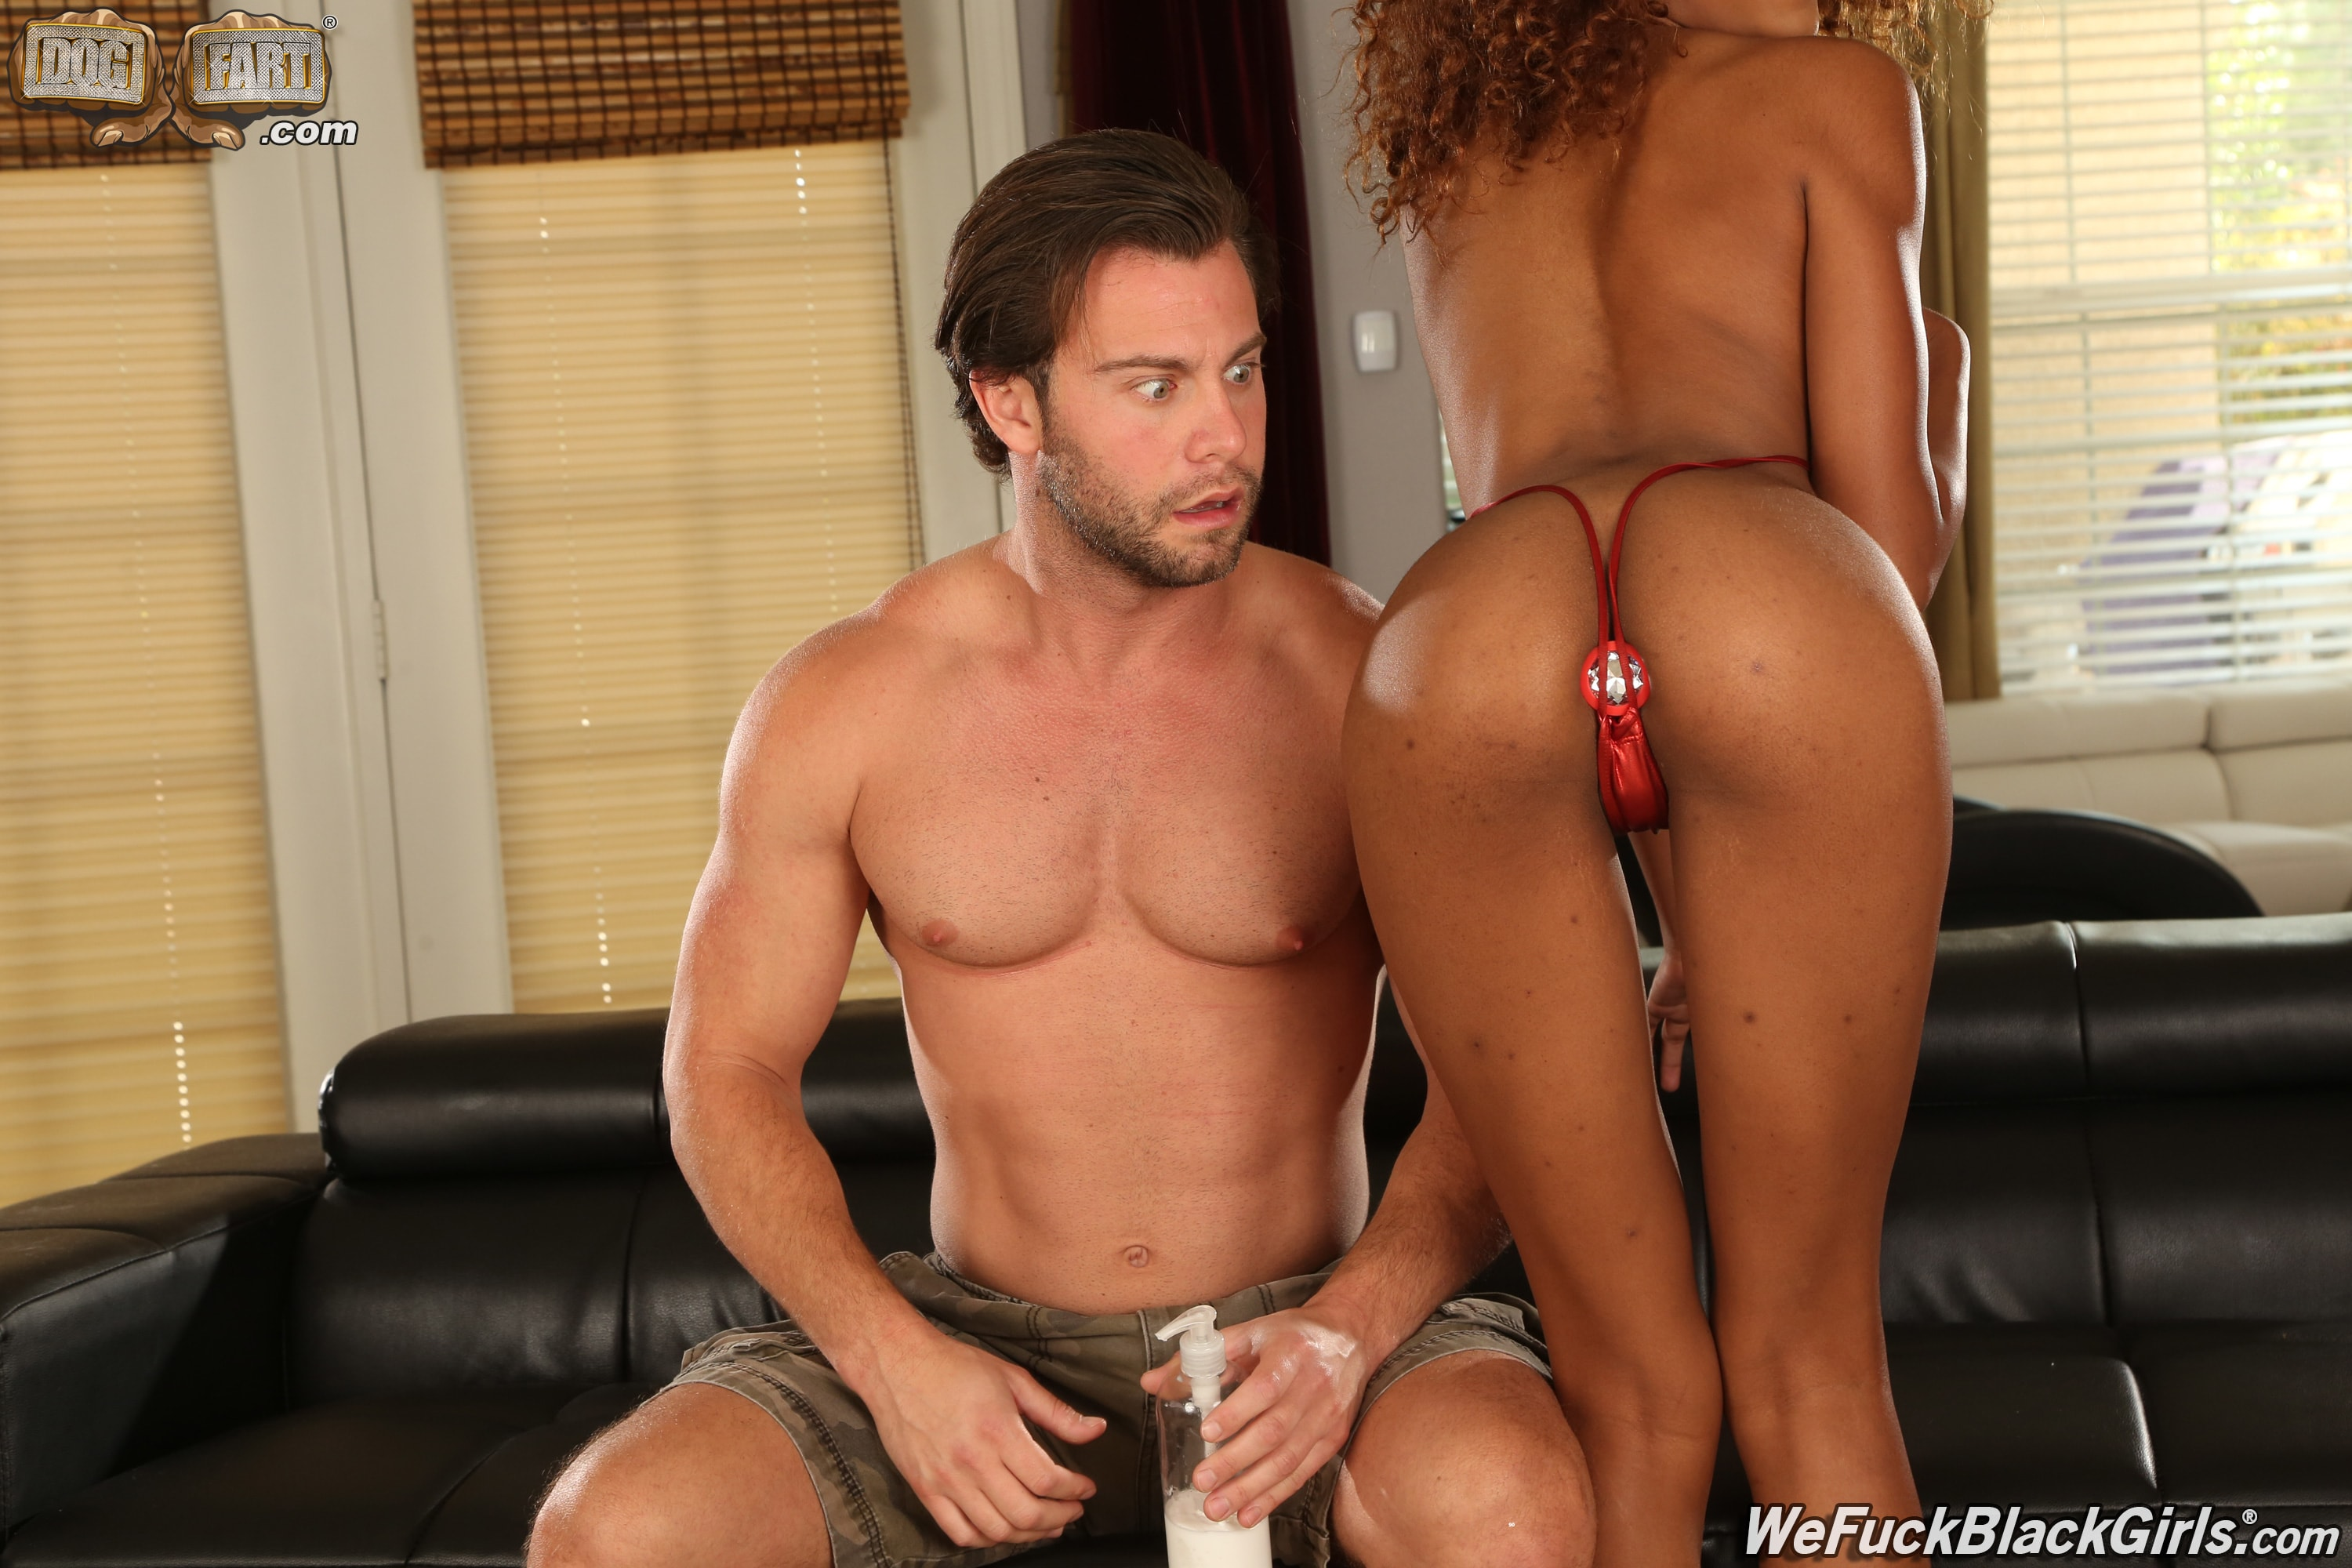 Dogfart '- We Fuck Black Girls' starring Brixley Benz (Photo 3)